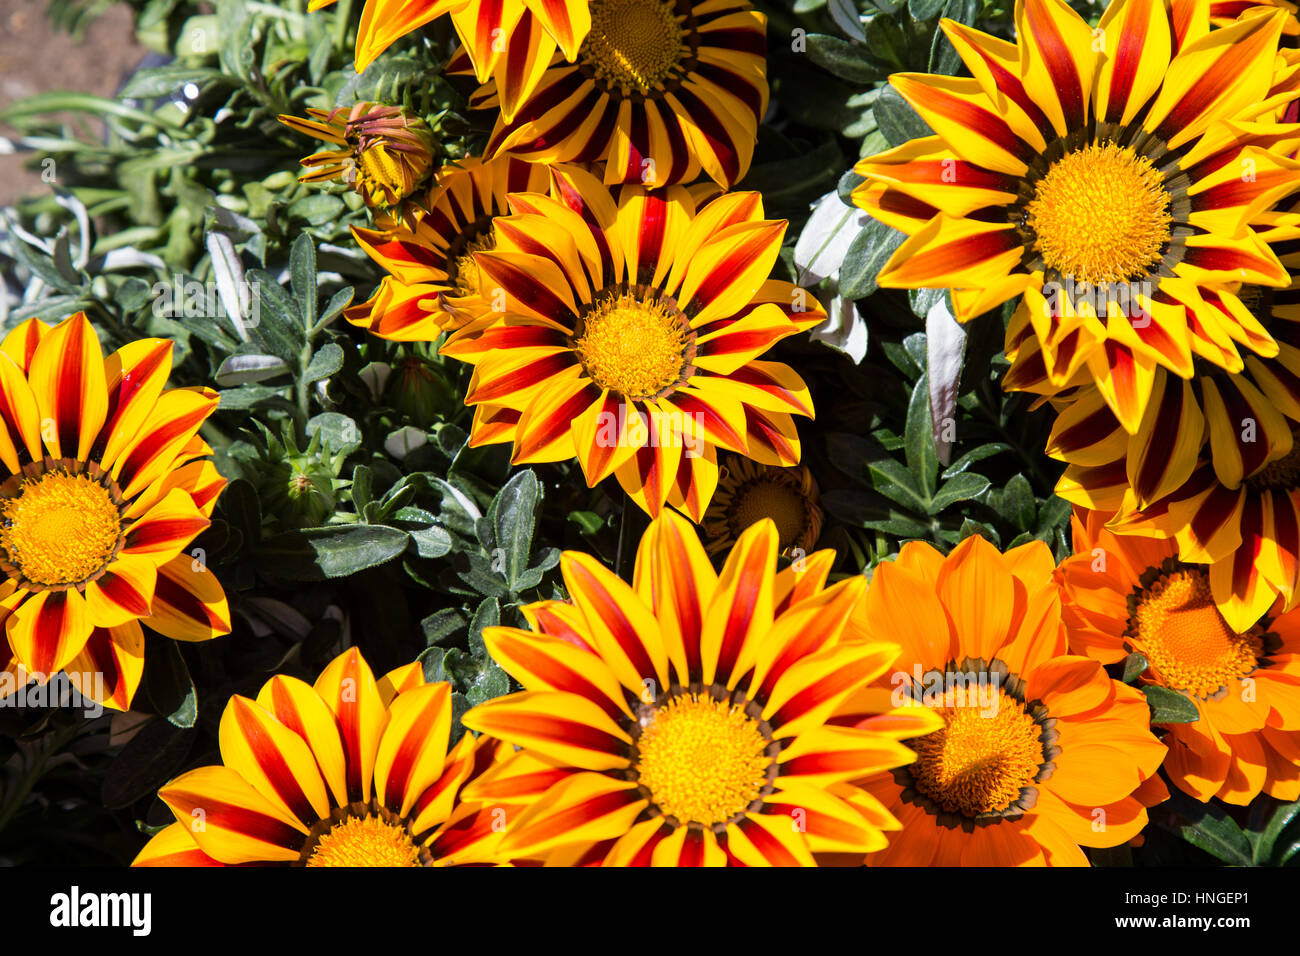 Gazania colored yellow and Red - Stock Image